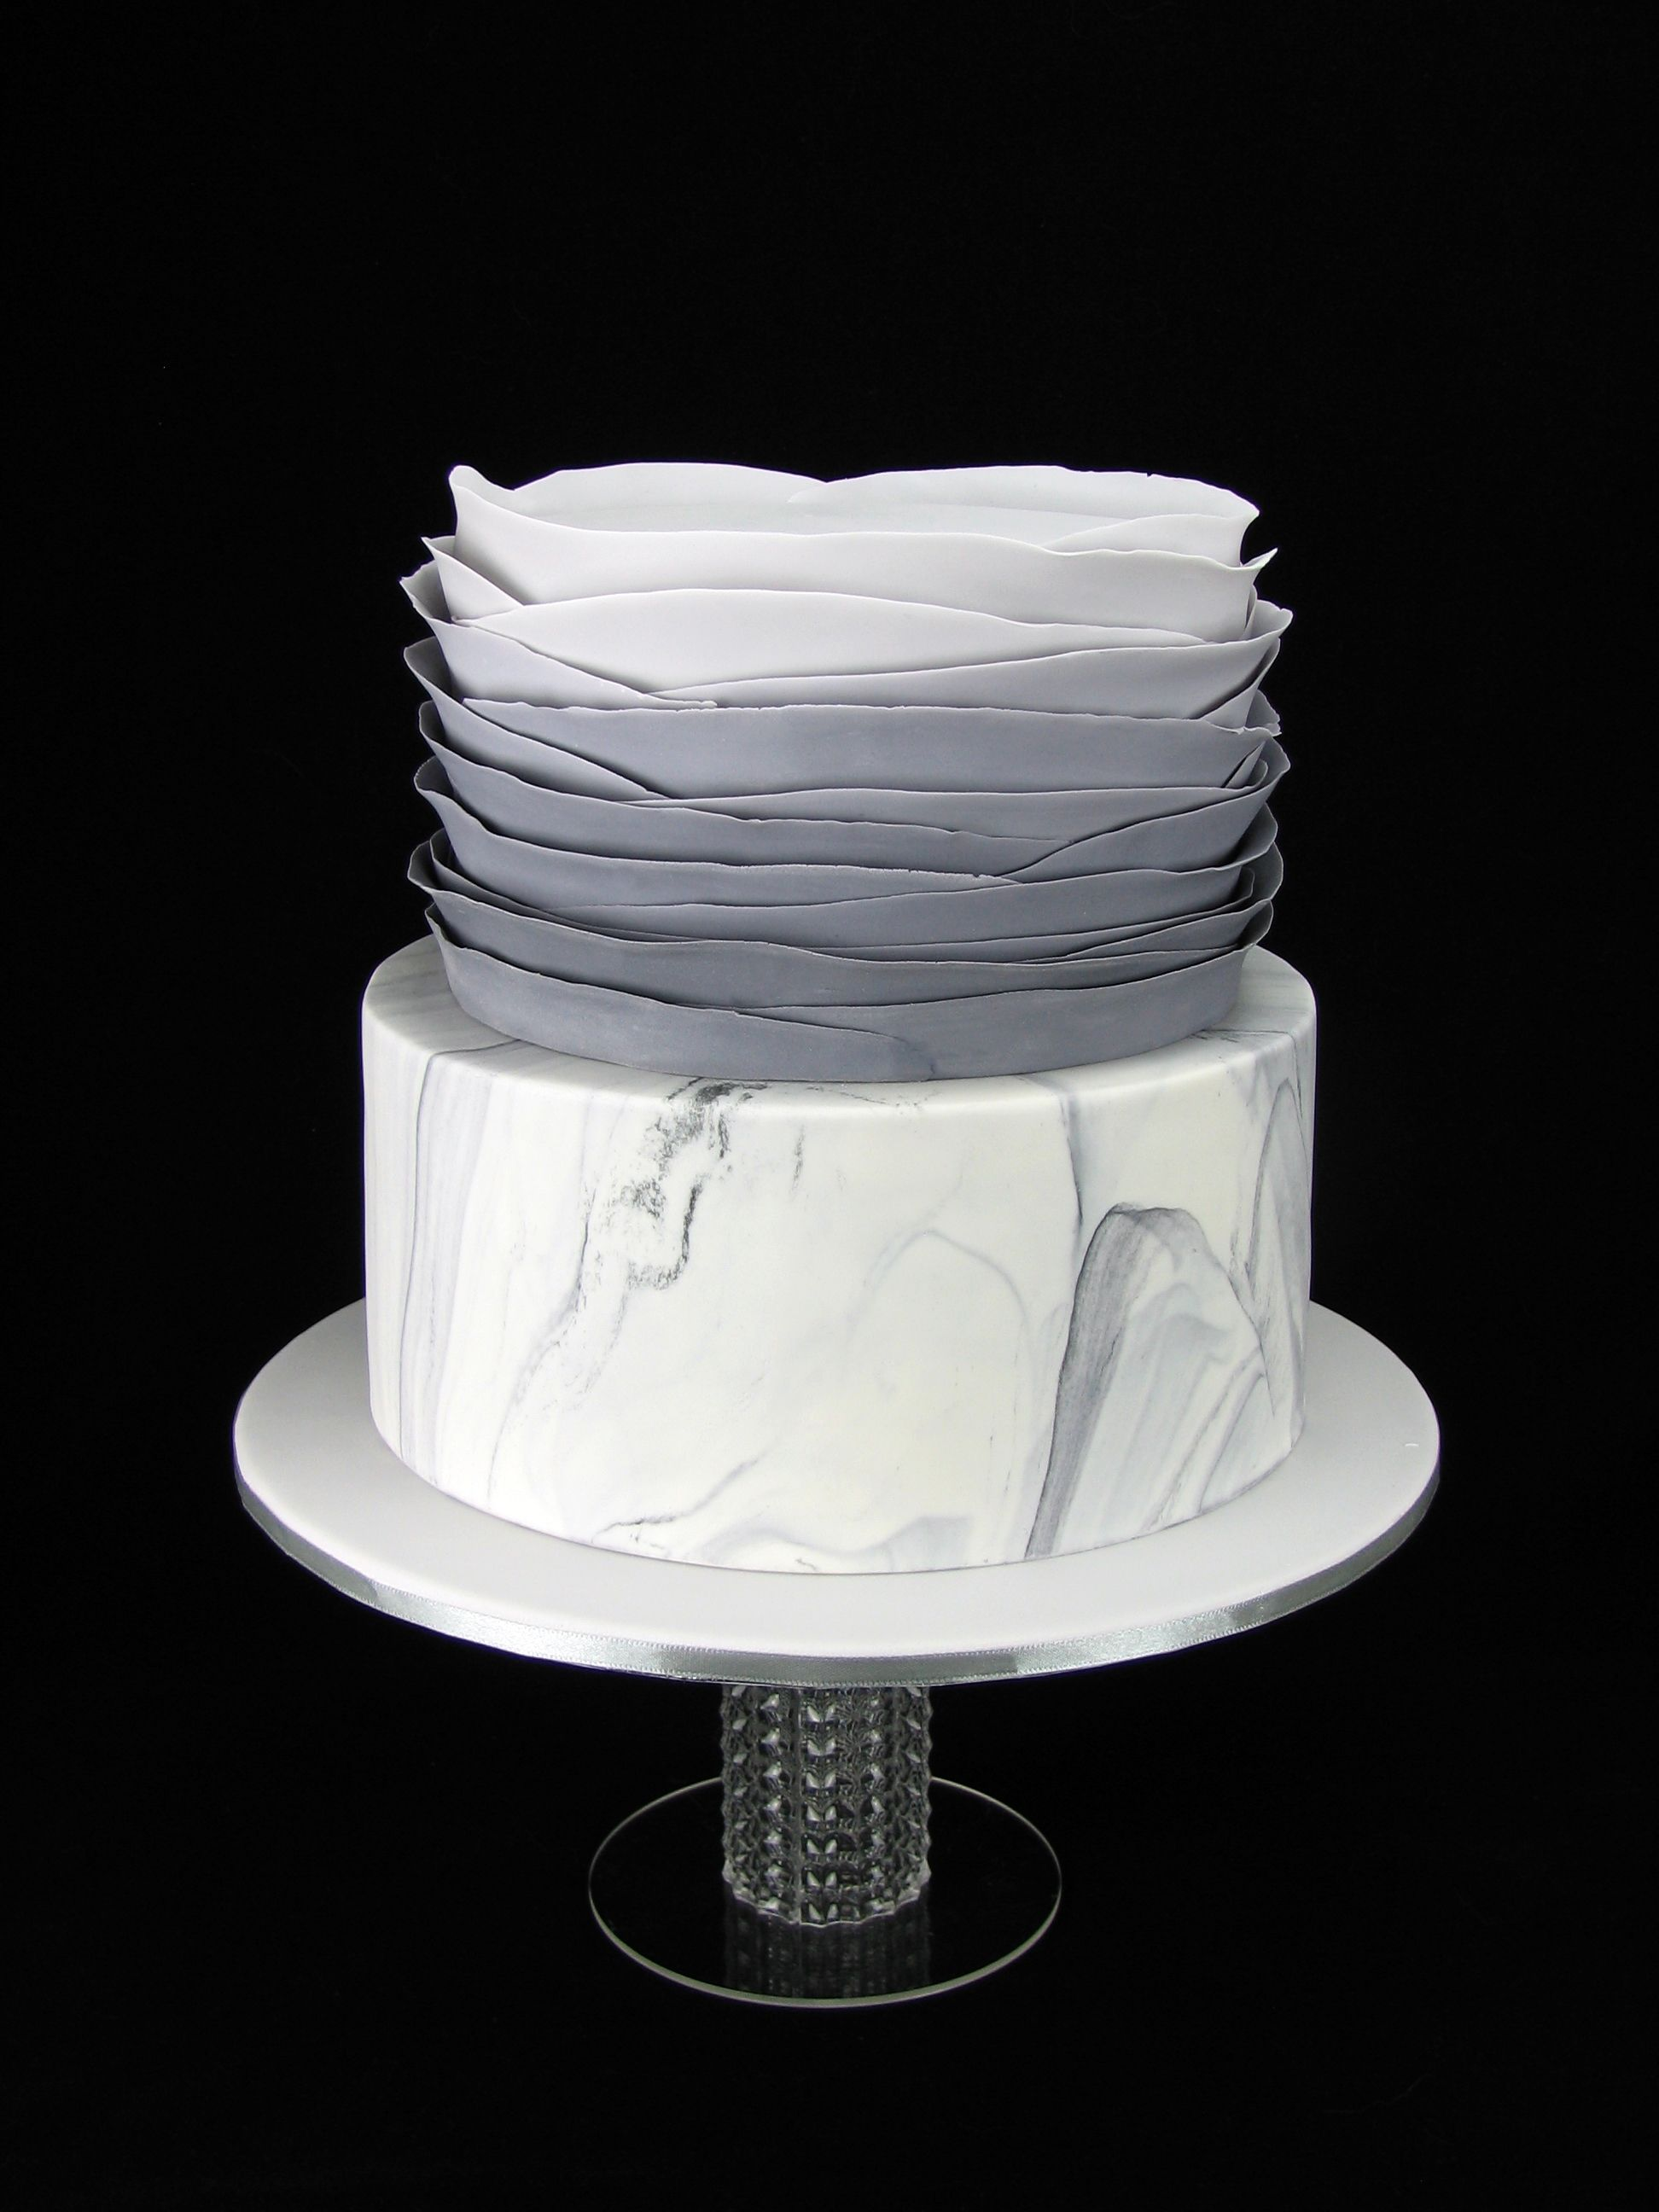 A Sophisticated Grey Ombre And Marbled Fondant Cake For A